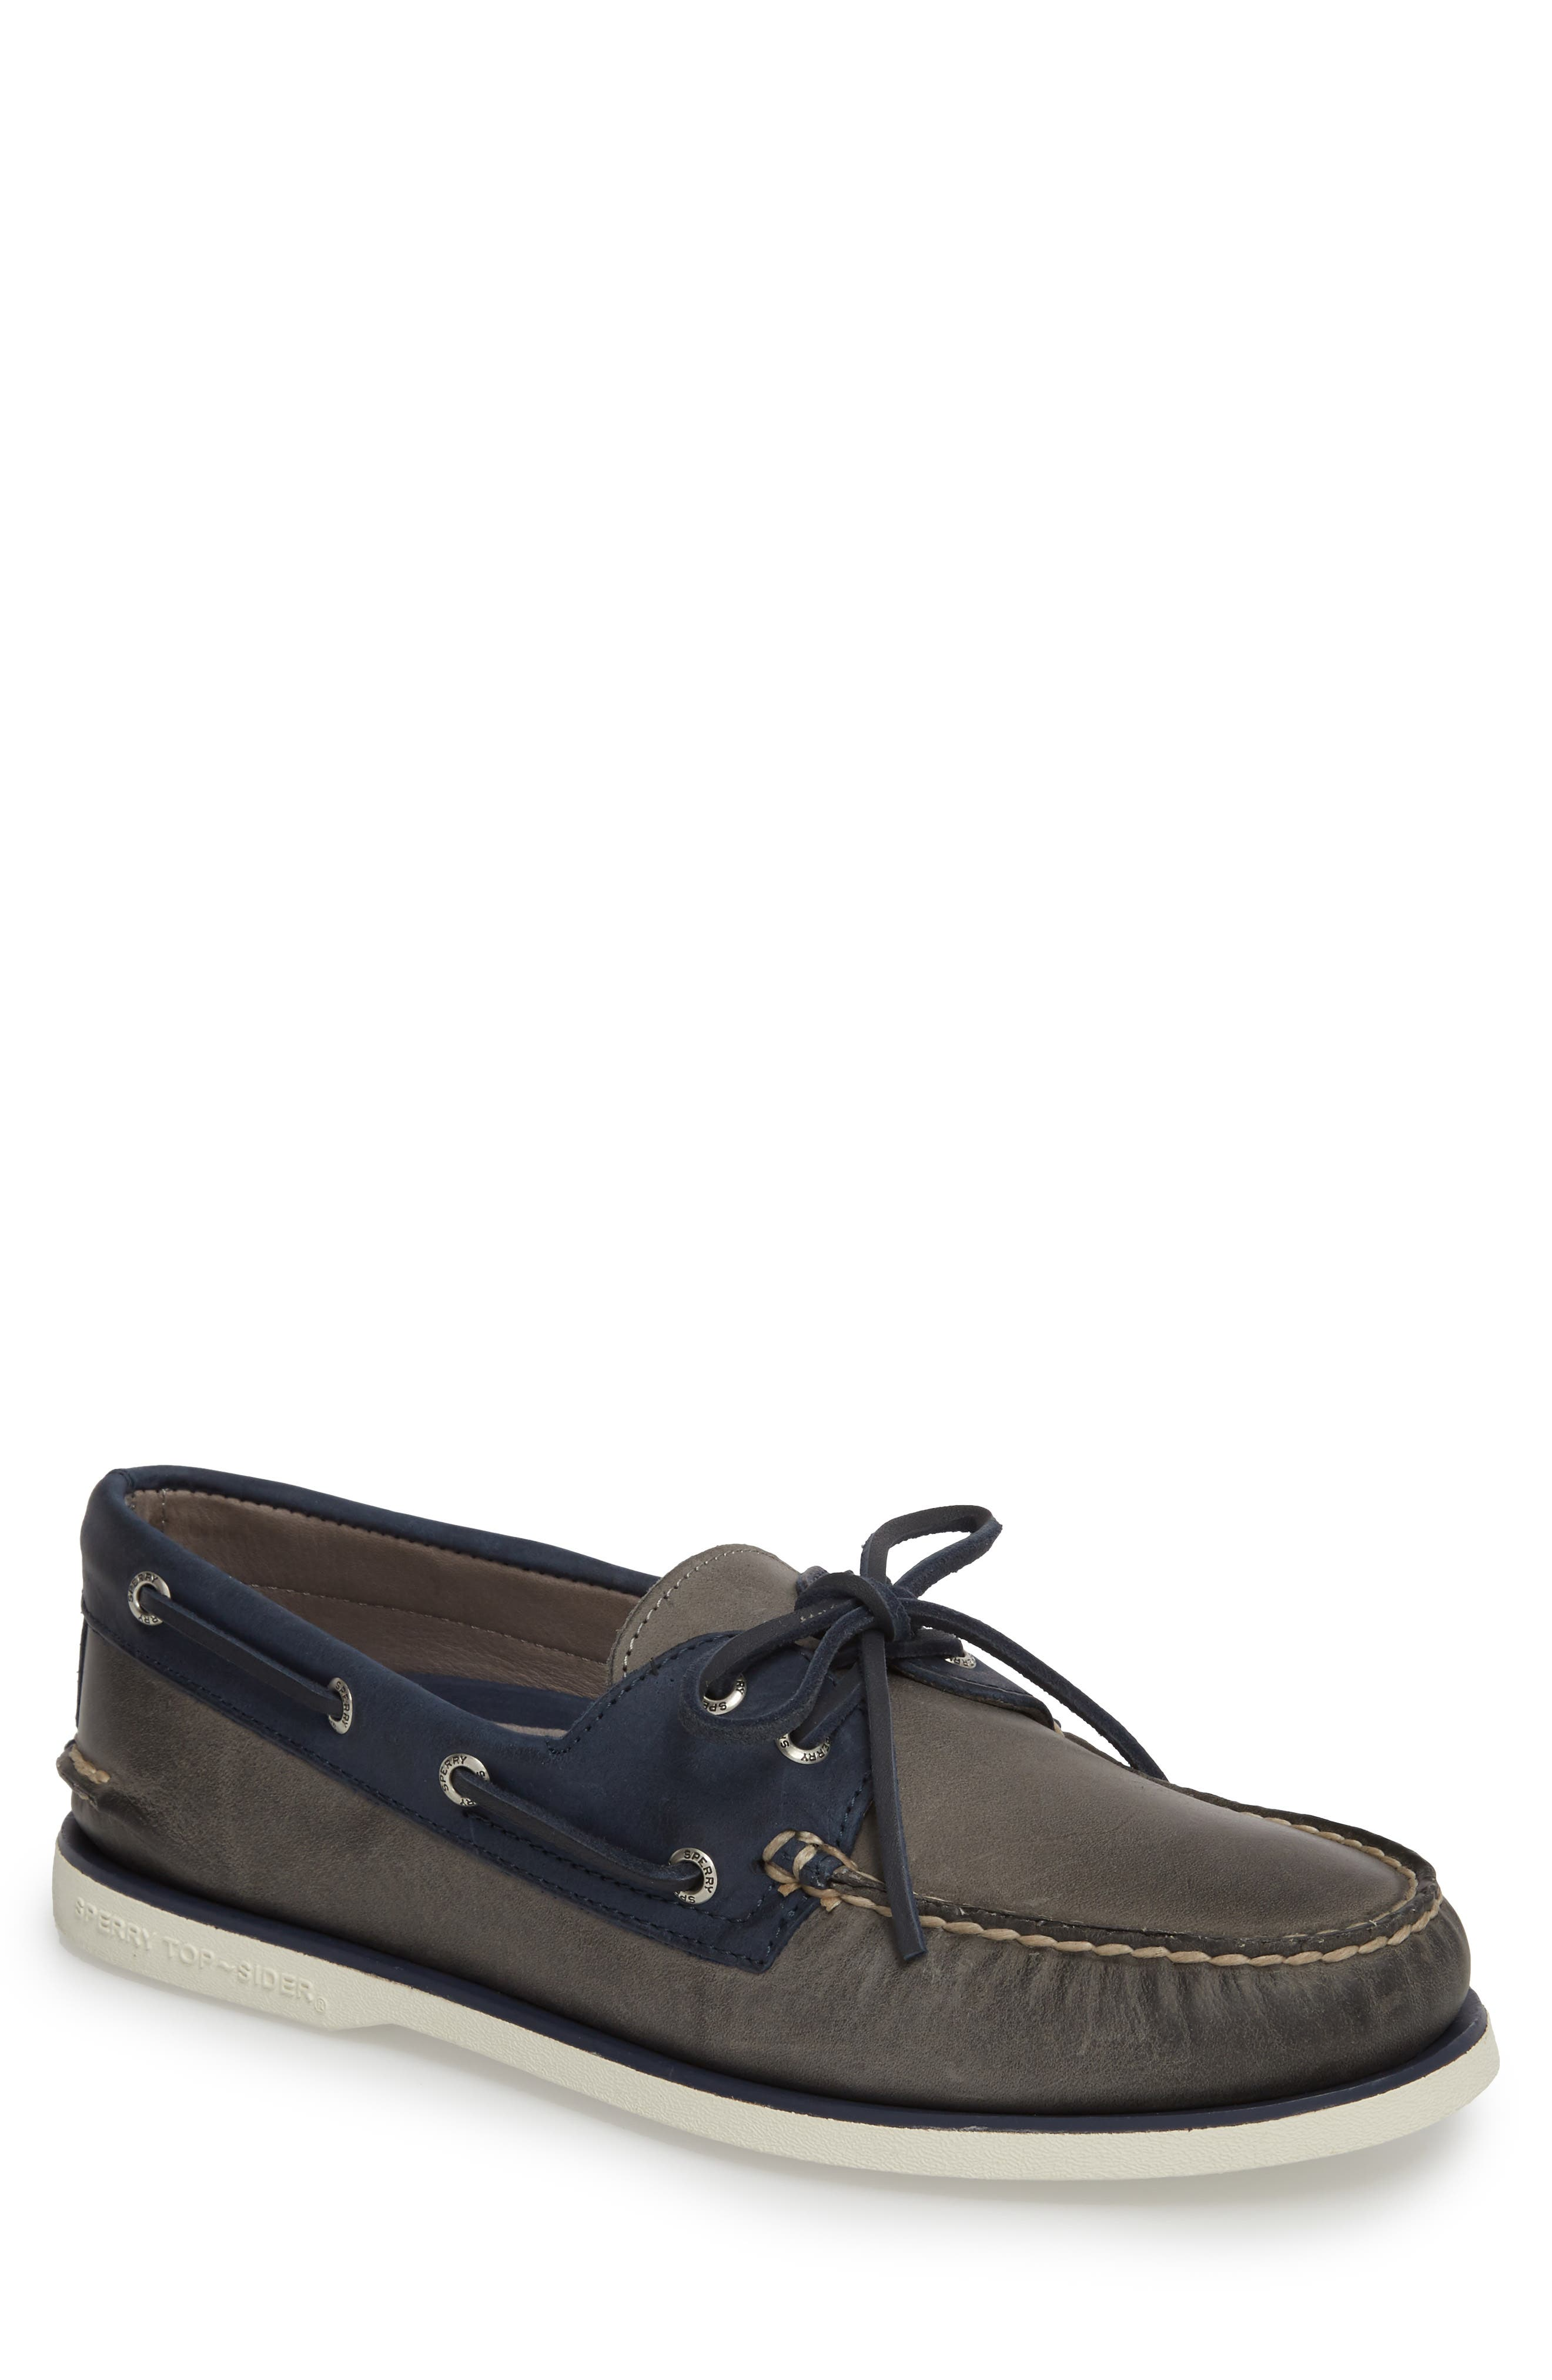 Gold Cup Authentic Original Boat Shoe,                             Main thumbnail 1, color,                             GREY/ NAVY LEATHER